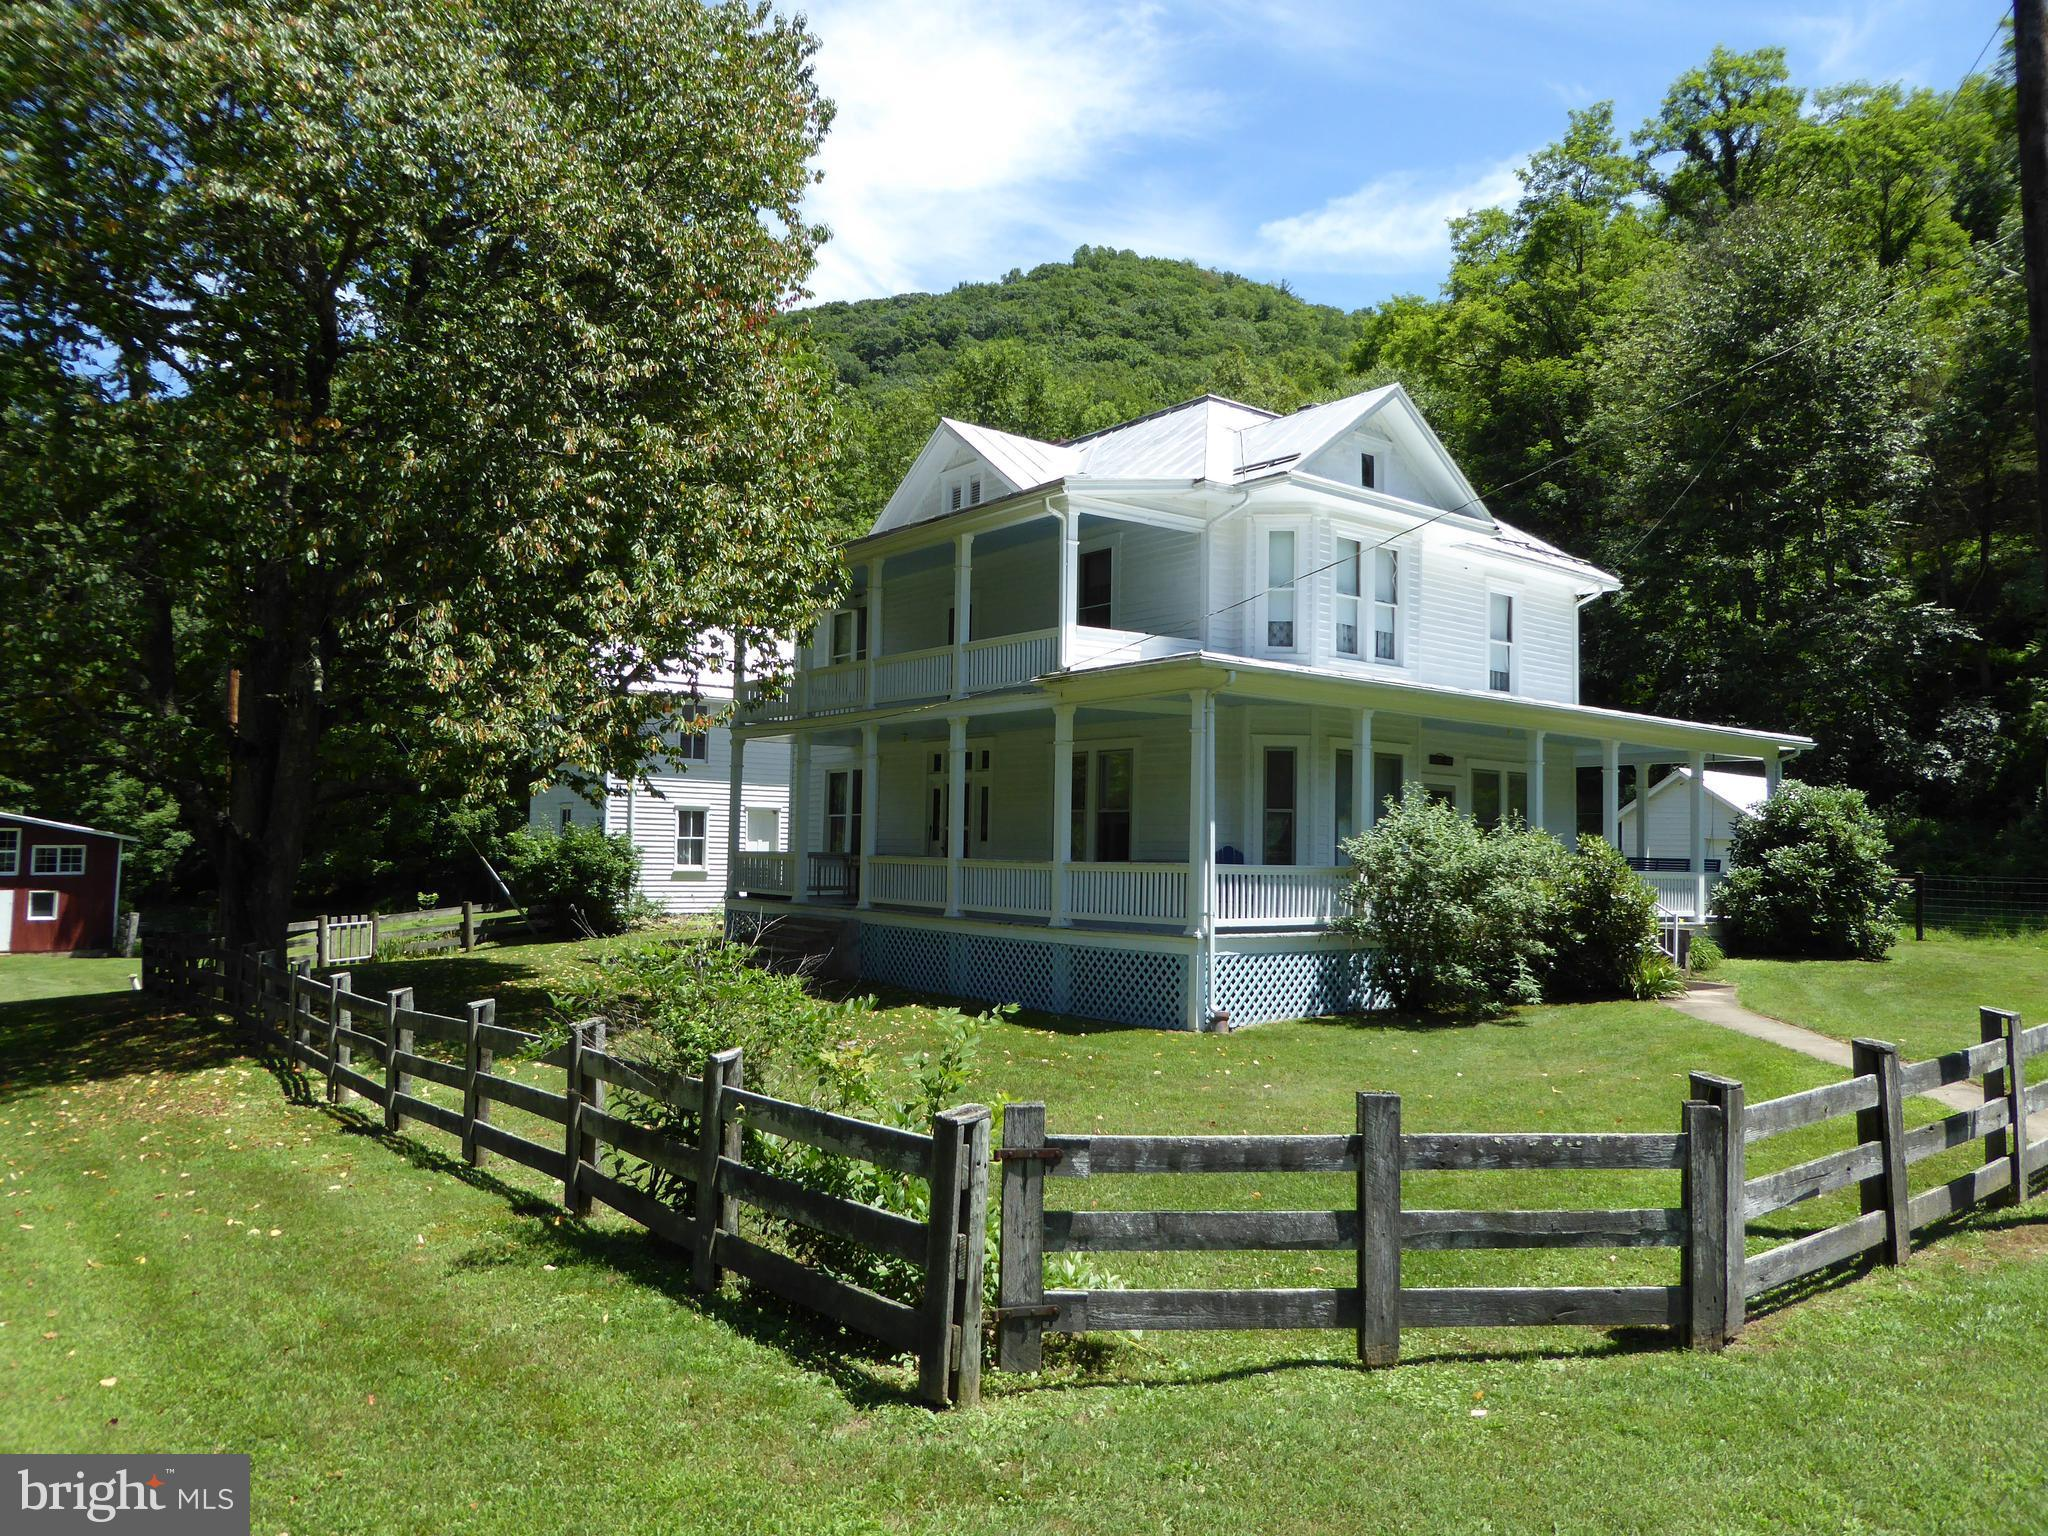 3593 SMITH CREEK ROAD, FRANKLIN, WV 26807